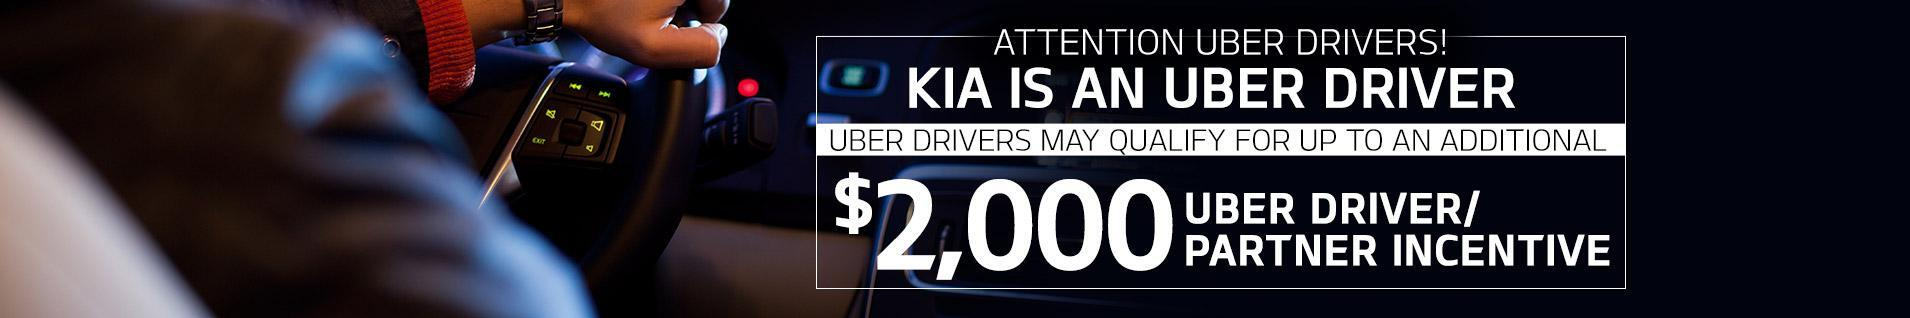 Attention Uber Drivers